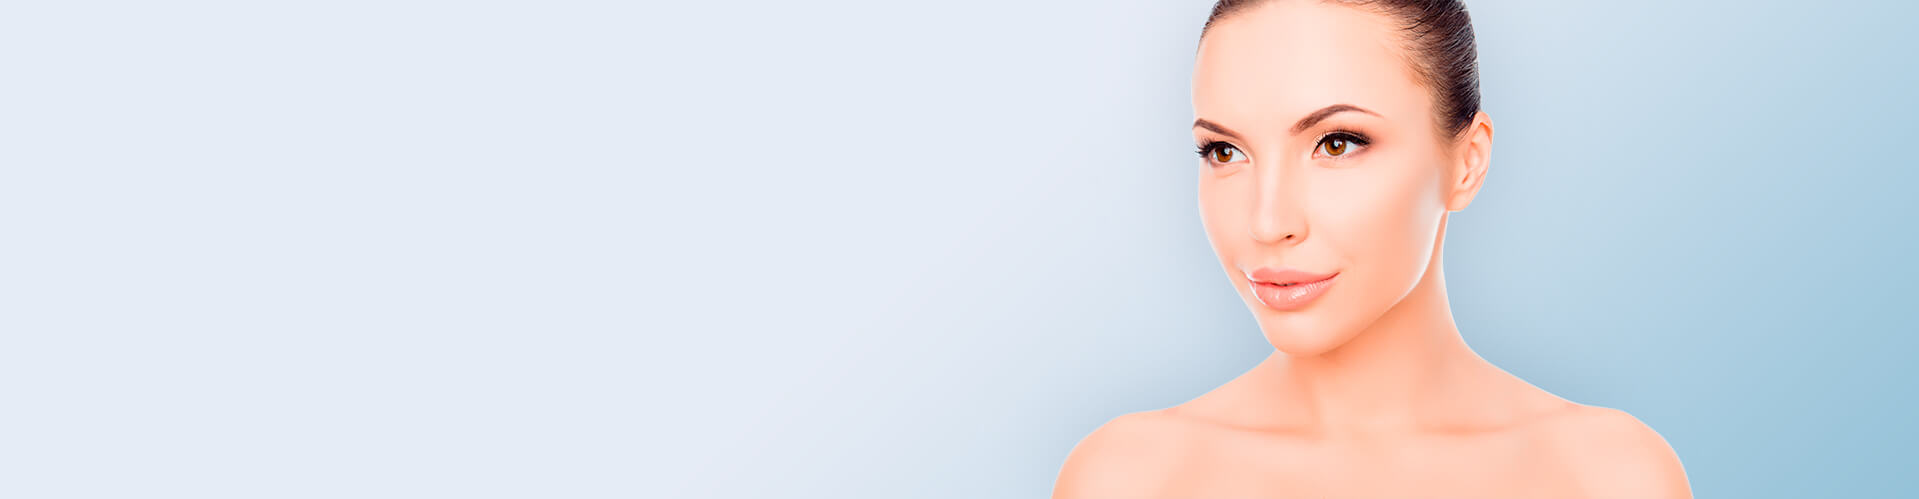 Perfect Skinned Woman With Large Lips on Blue Background